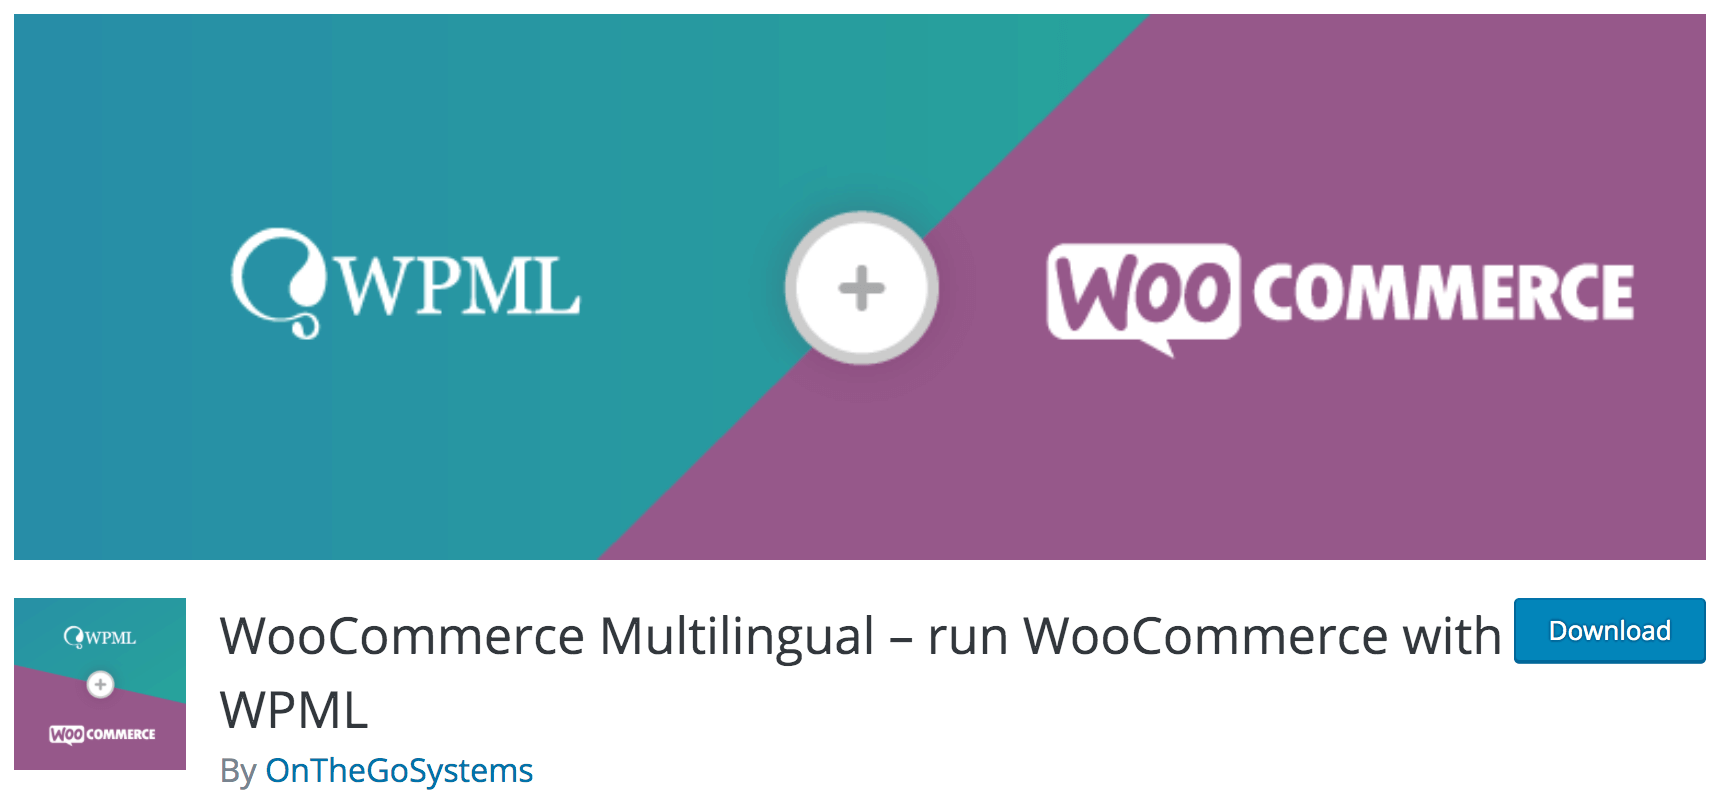 WooCommerce Multilingual with WPML